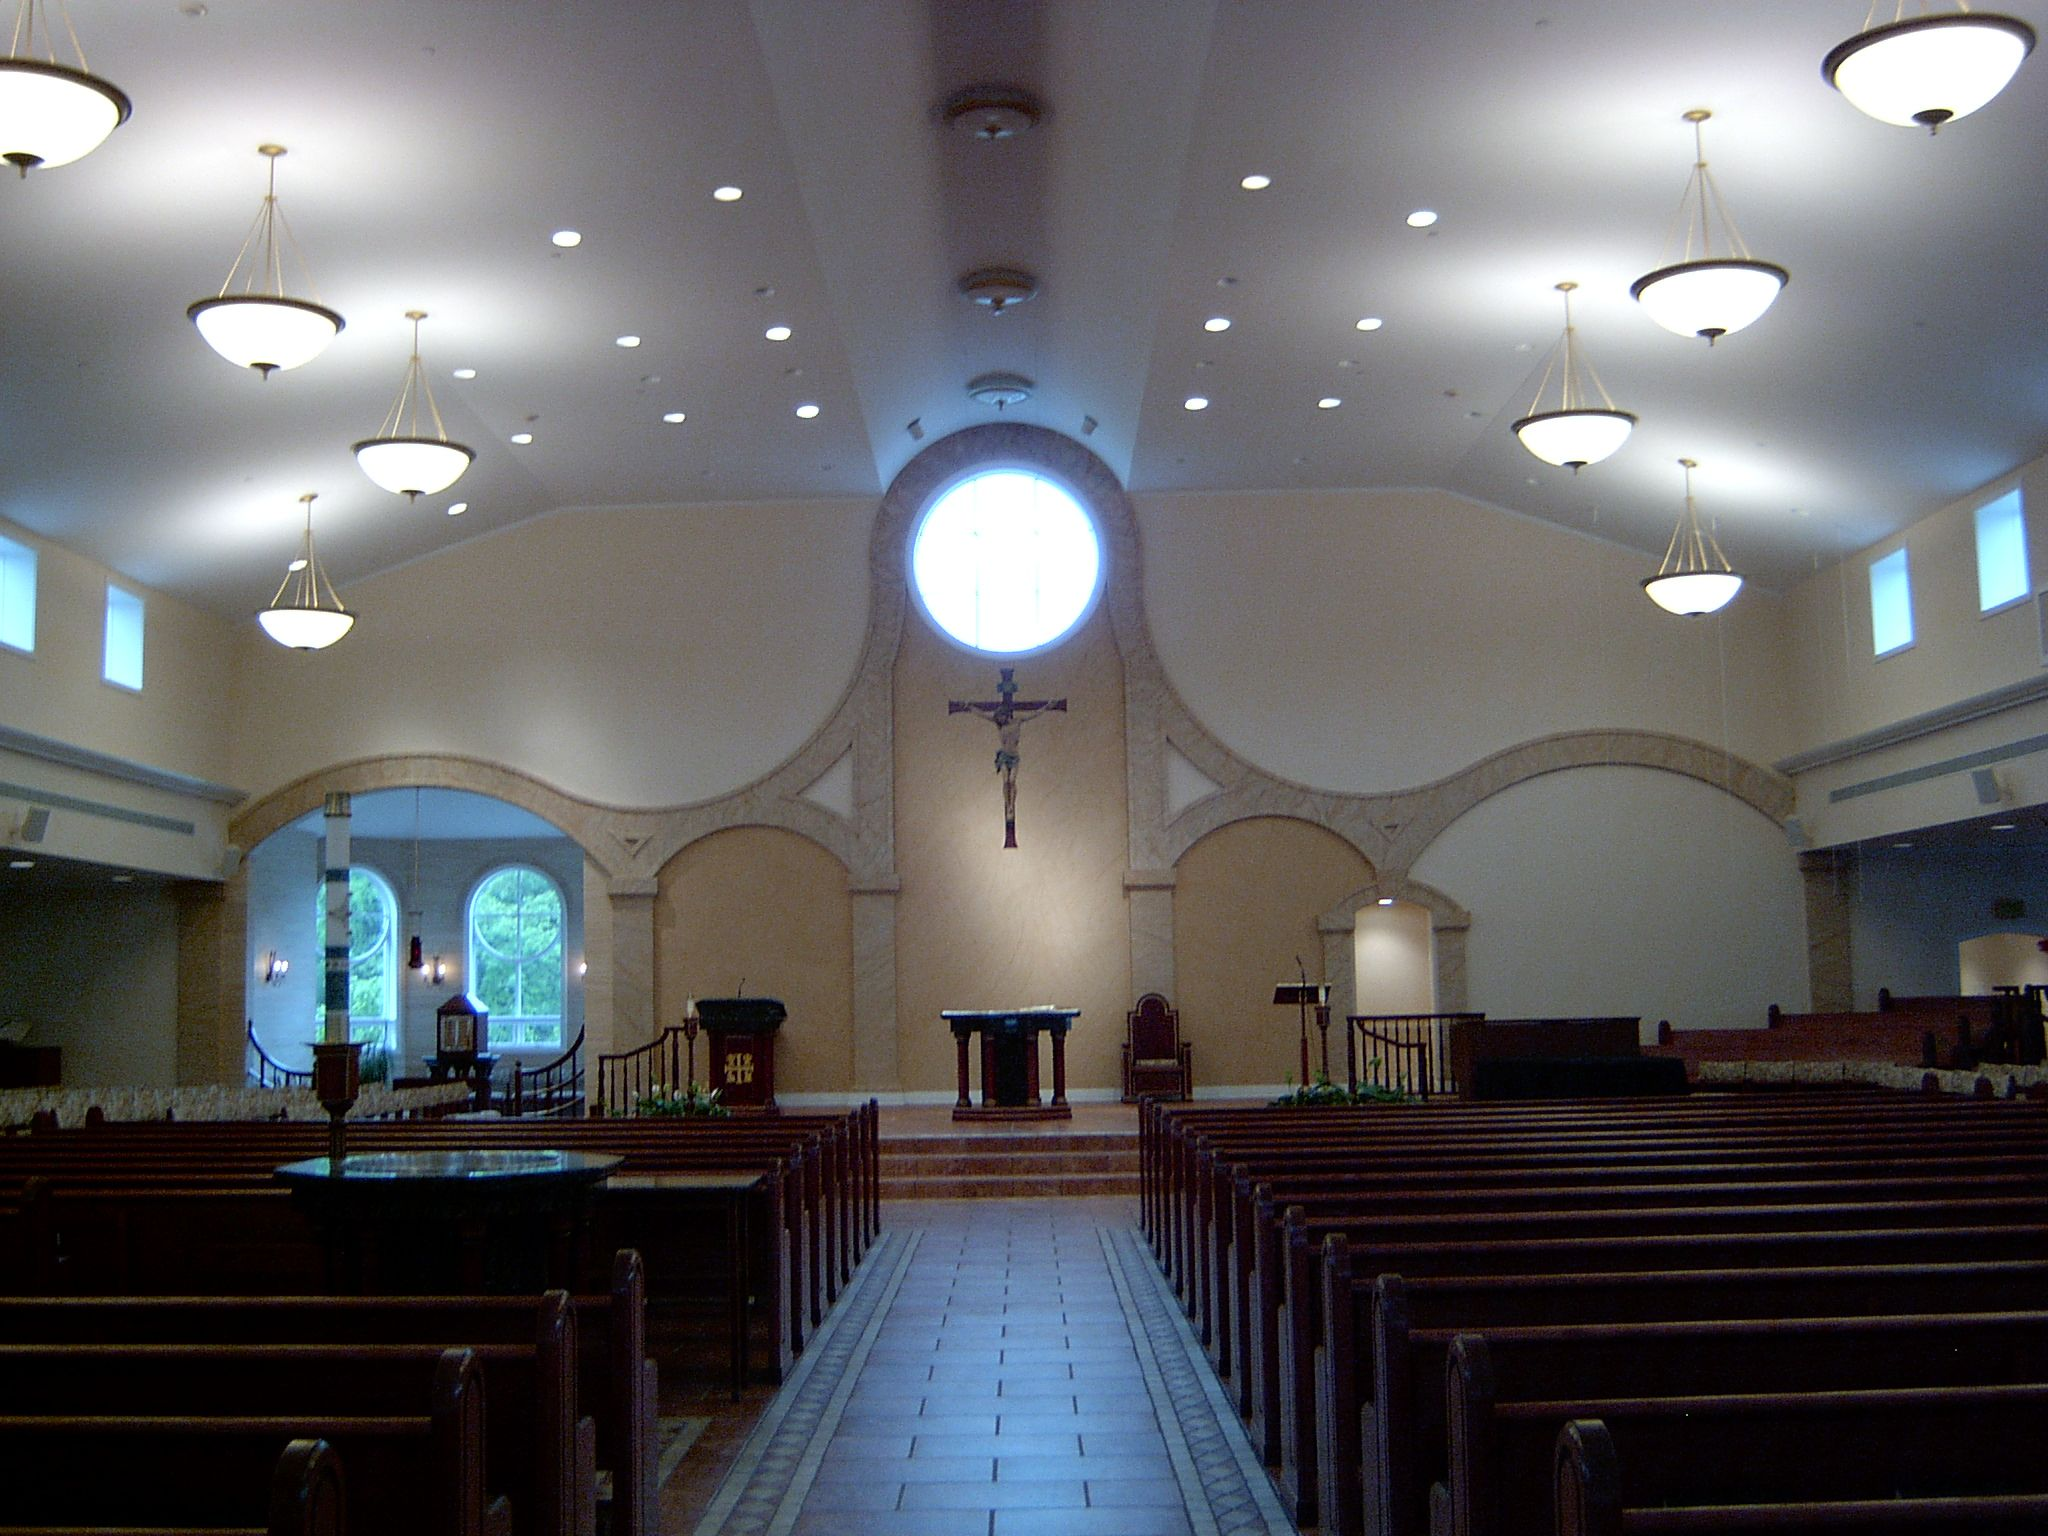 New york nassau county rockville centre - Churches Painting Diocese Rockville Centre Ny New Construction Interior Exterior Custom Wood Staining Commack Suffolk County